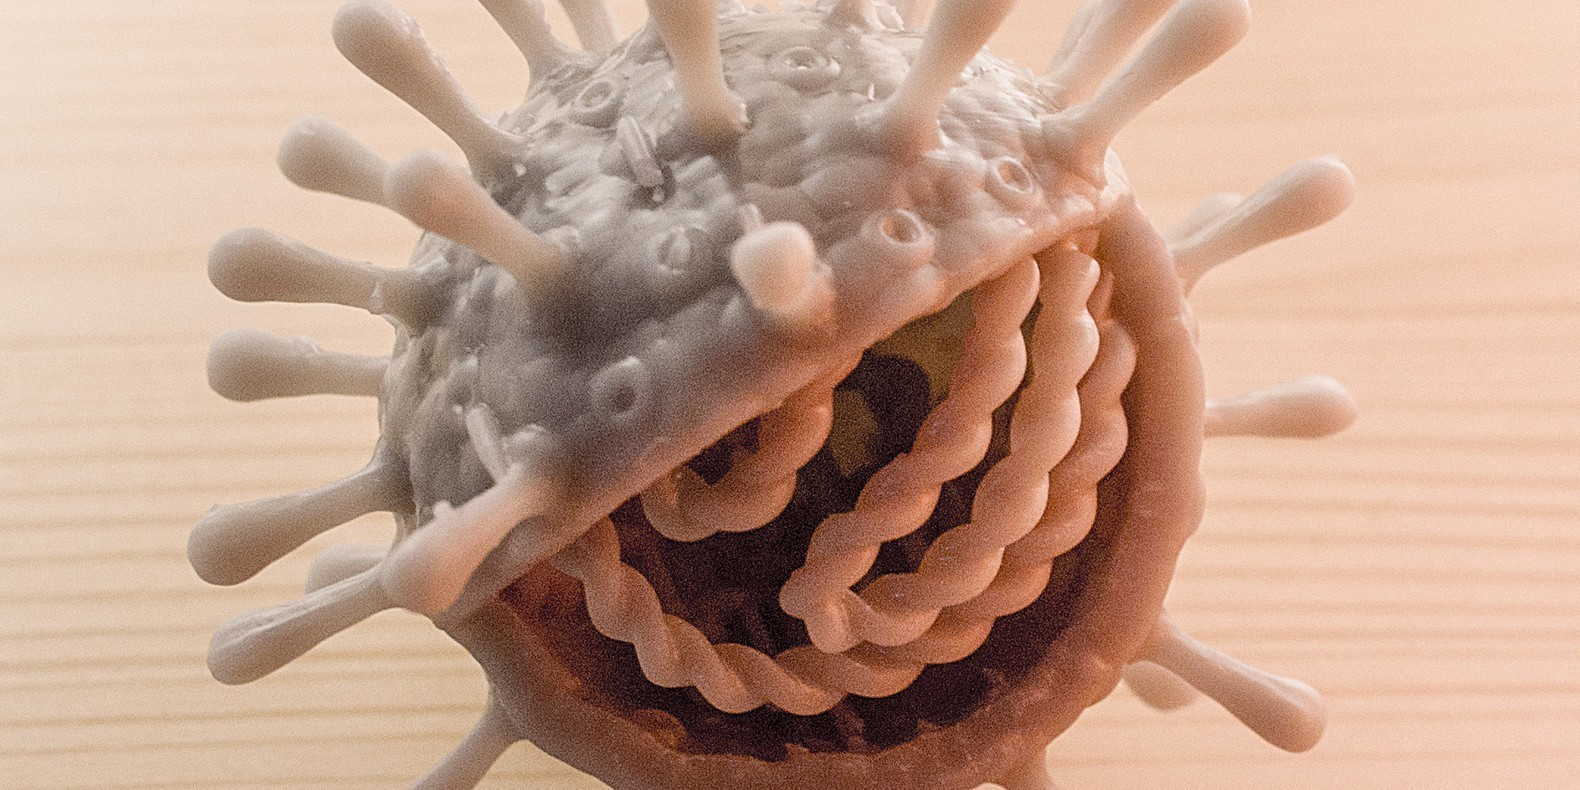 Here is a selection of the most useful 3D models to make with a 3D printer agains coronavirus covid-19